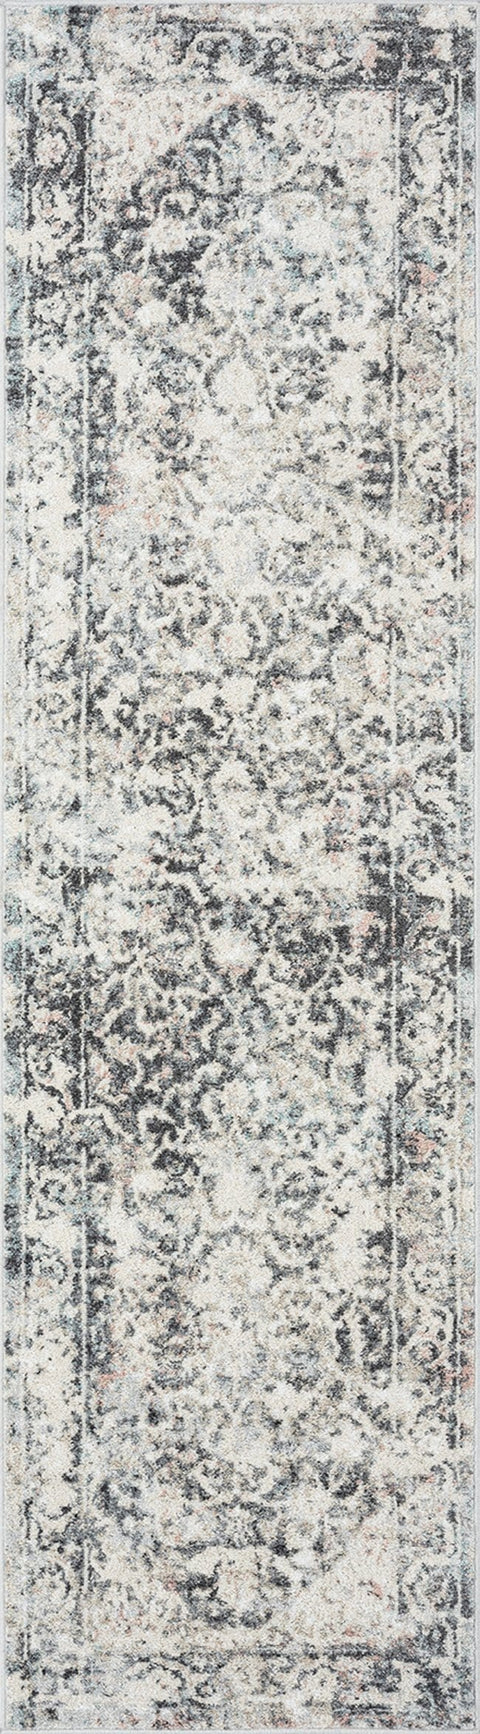 Thea Cream and Grey Traditional Medallion Floral Runner Rug